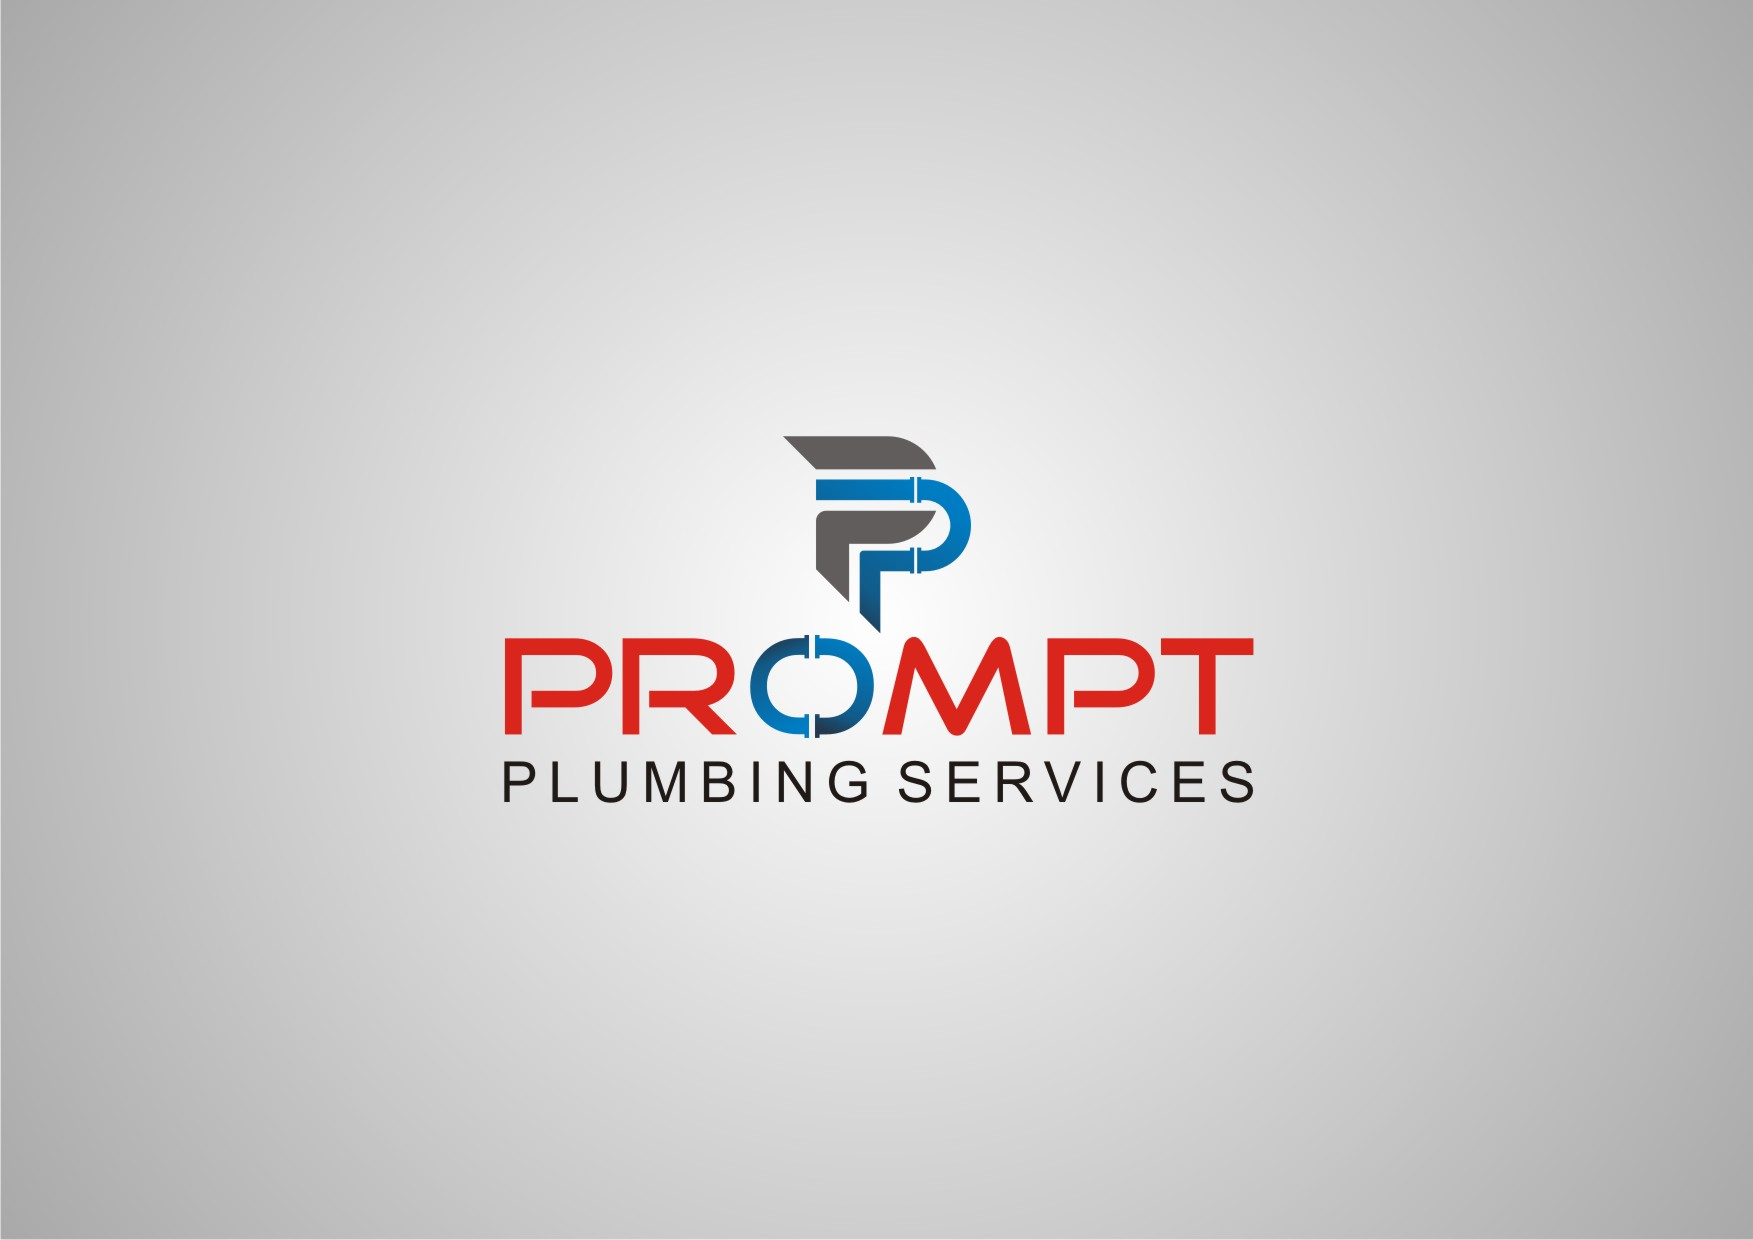 Logo Design by Private User - Entry No. 63 in the Logo Design Contest Artistic Logo Design for Prompt Plumbing Services.